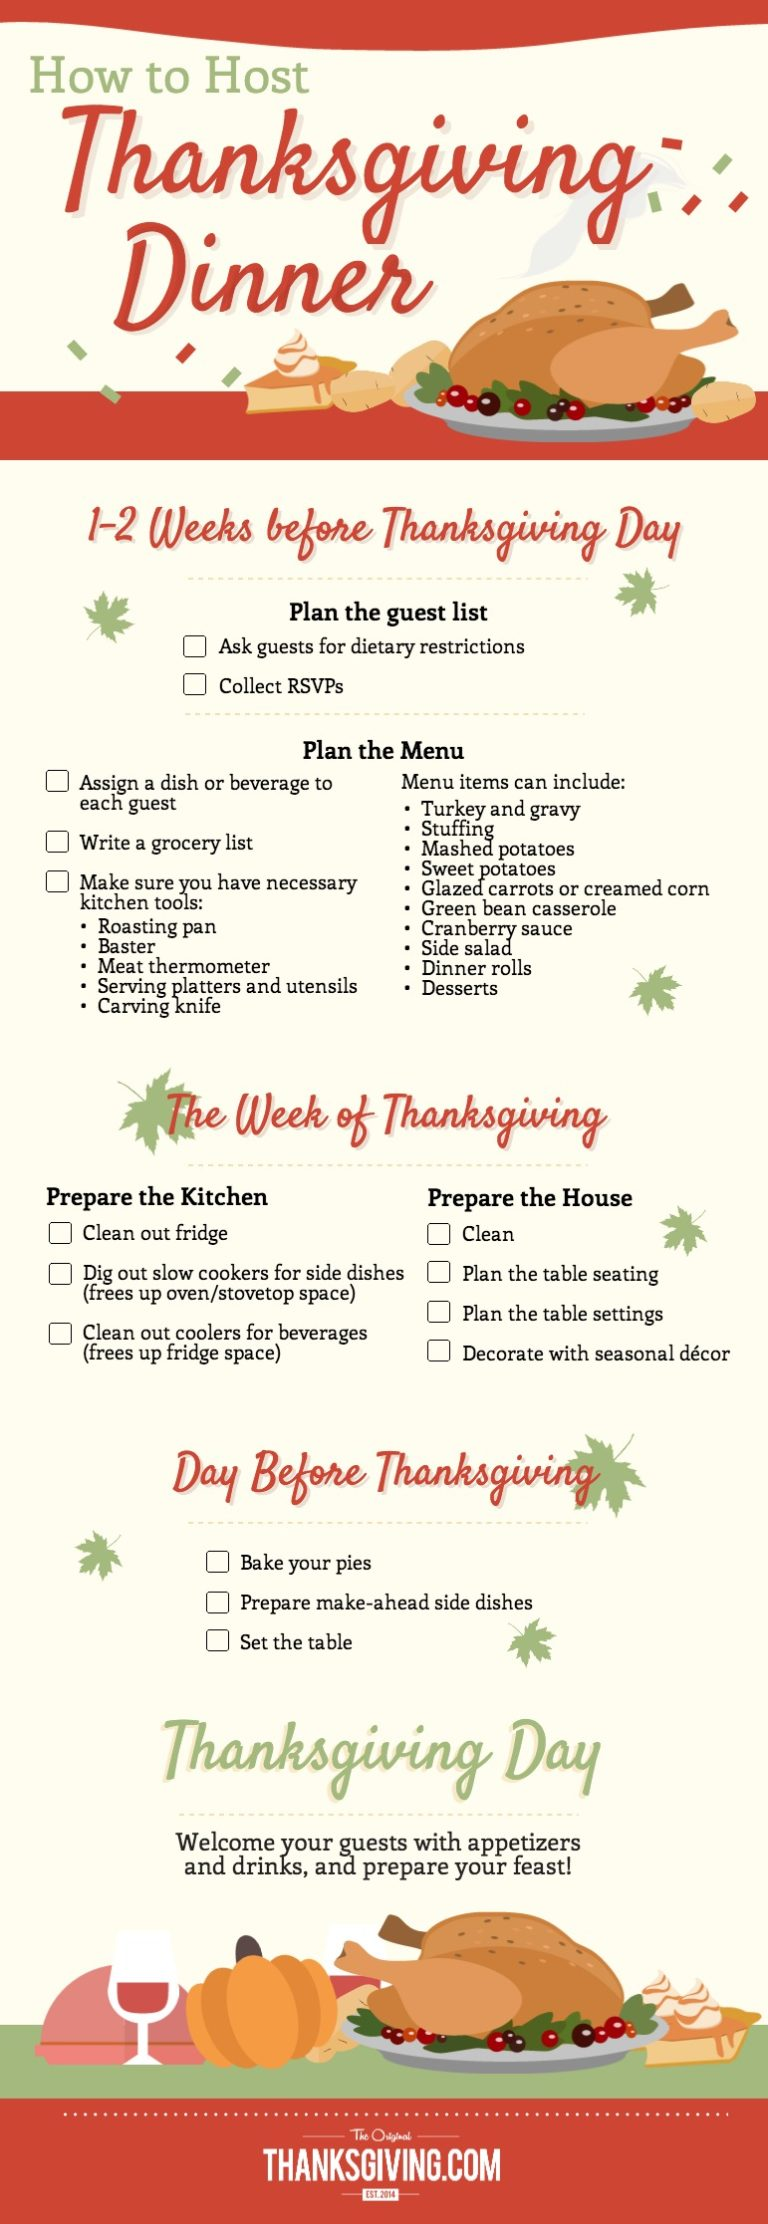 Timeline Planning Your Thanksgiving Celebration Thanksgivingdinner Thanksgivingplaning In 2020 Hosting Thanksgiving Dinner Thanksgiving Dinner Thanksgiving Planning